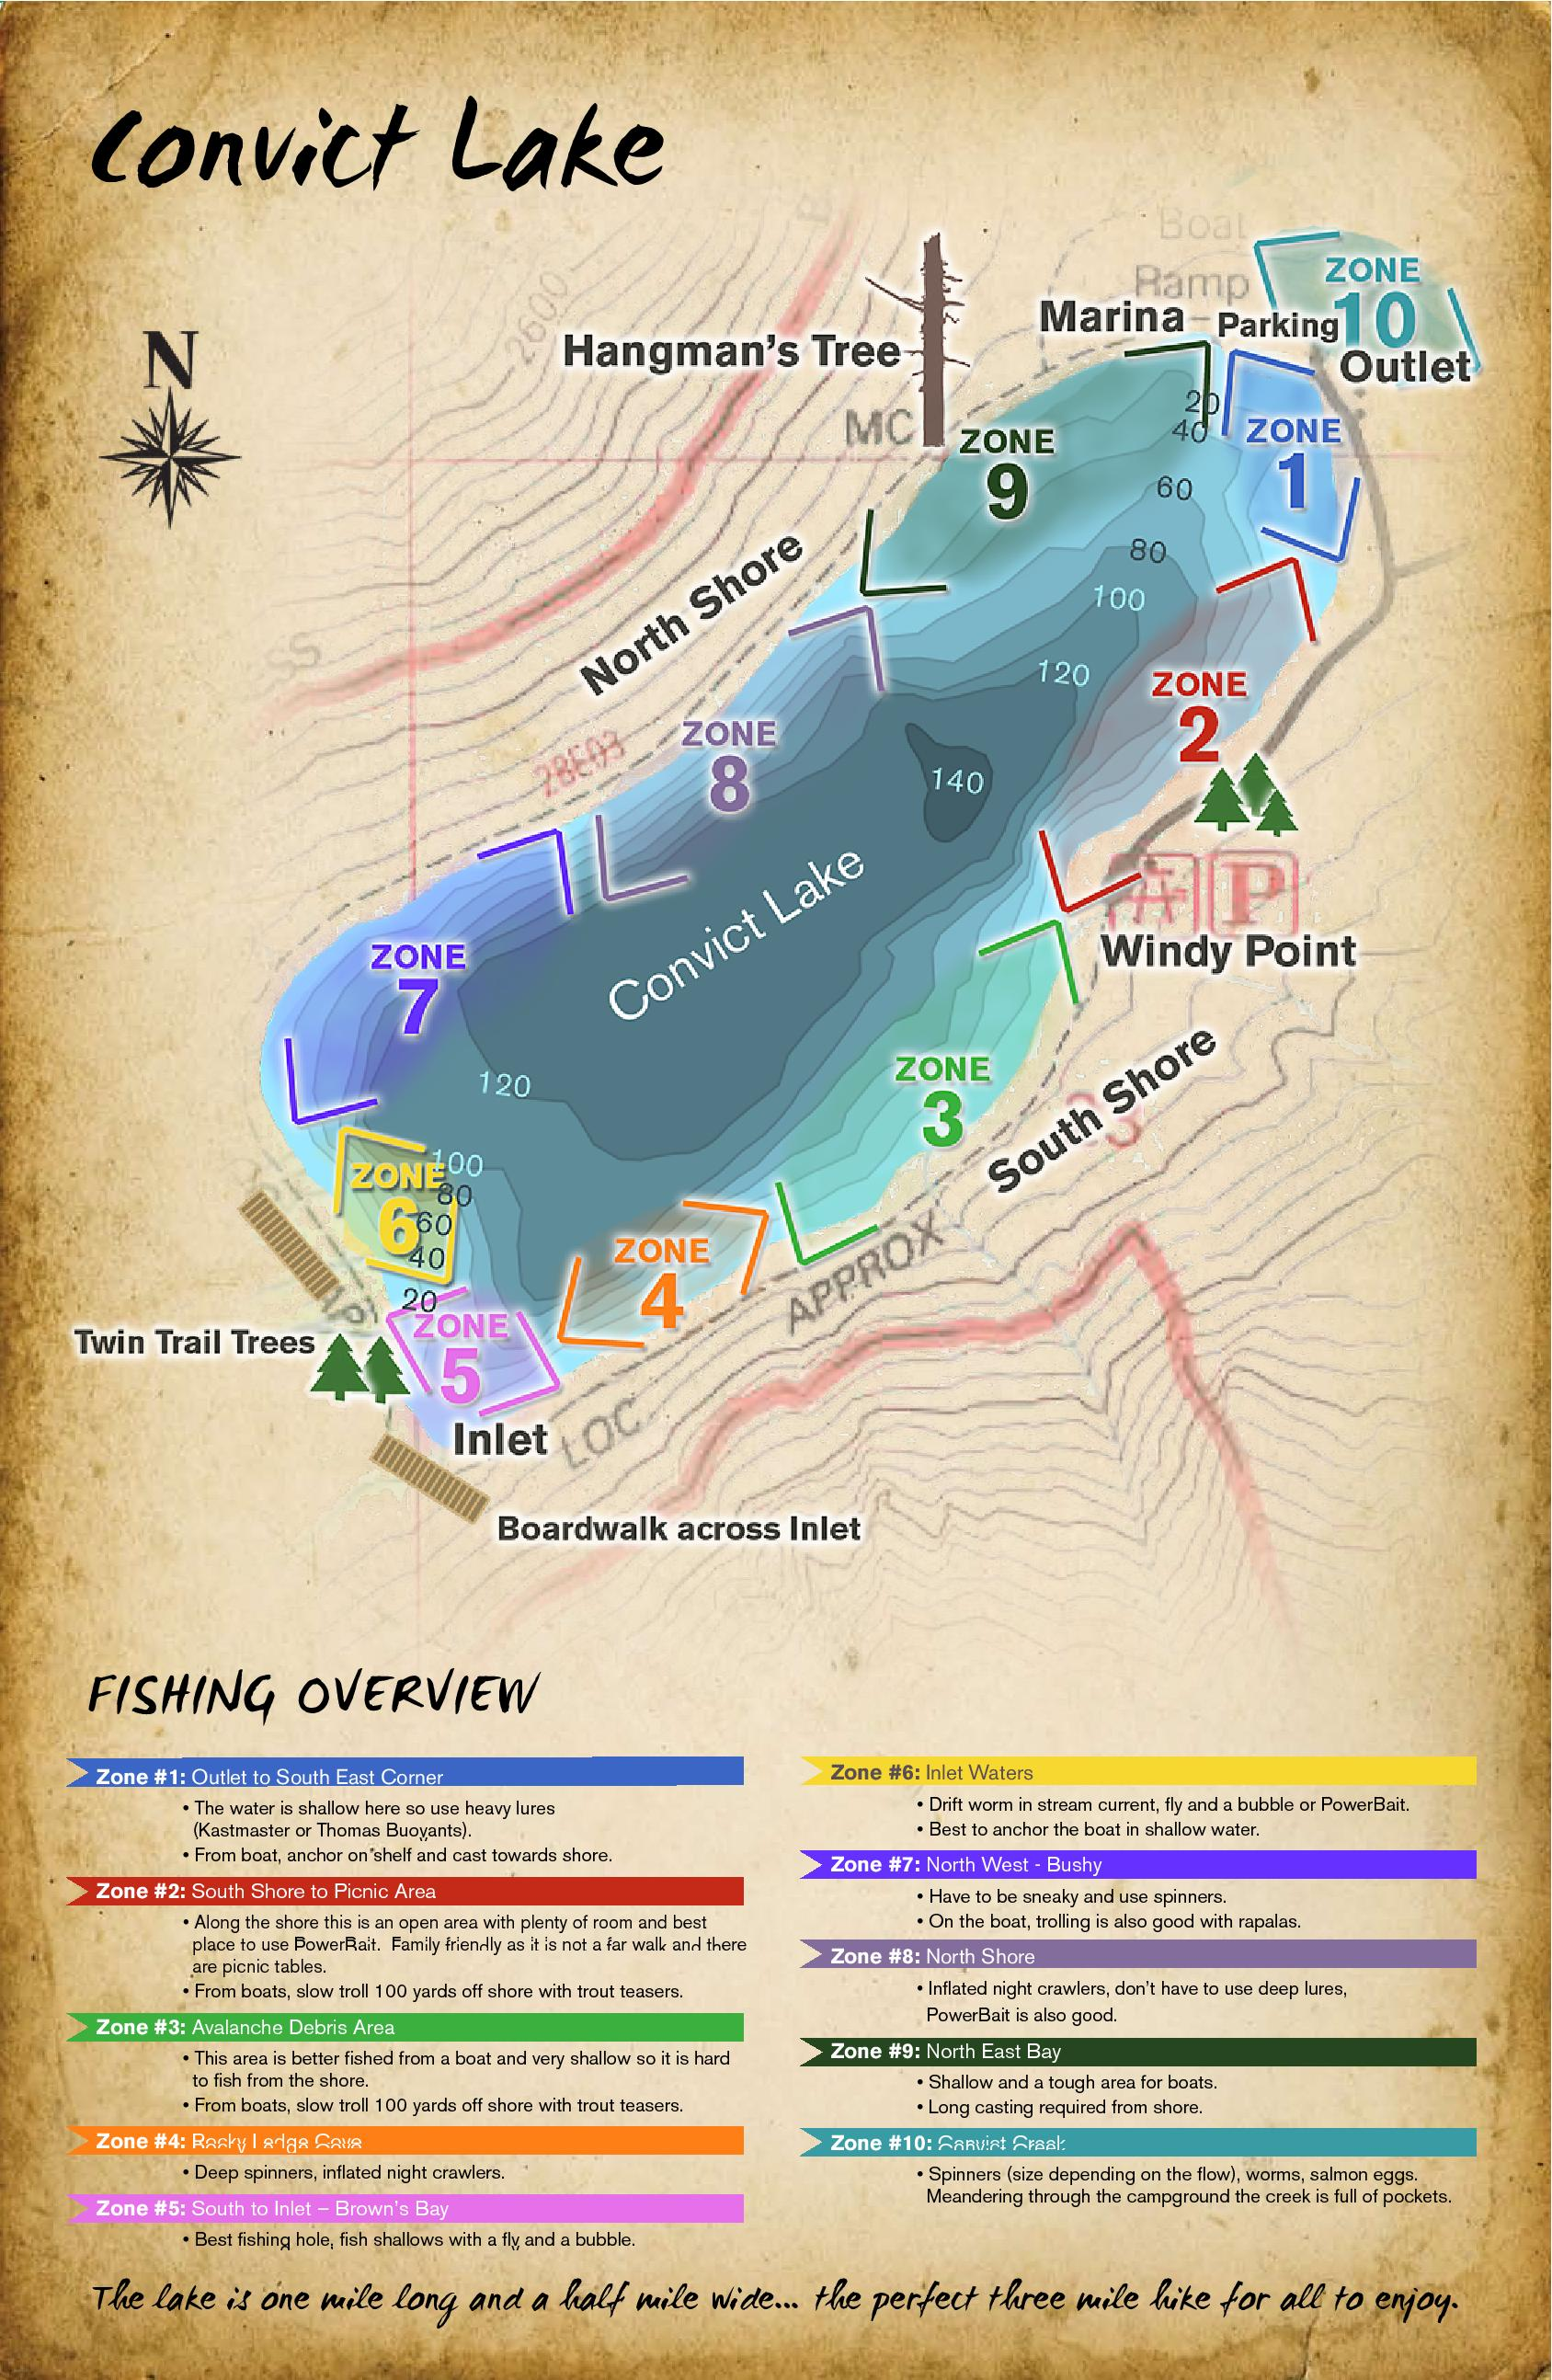 Fishing map for convict lake convict lake resort for Convict lake fishing report